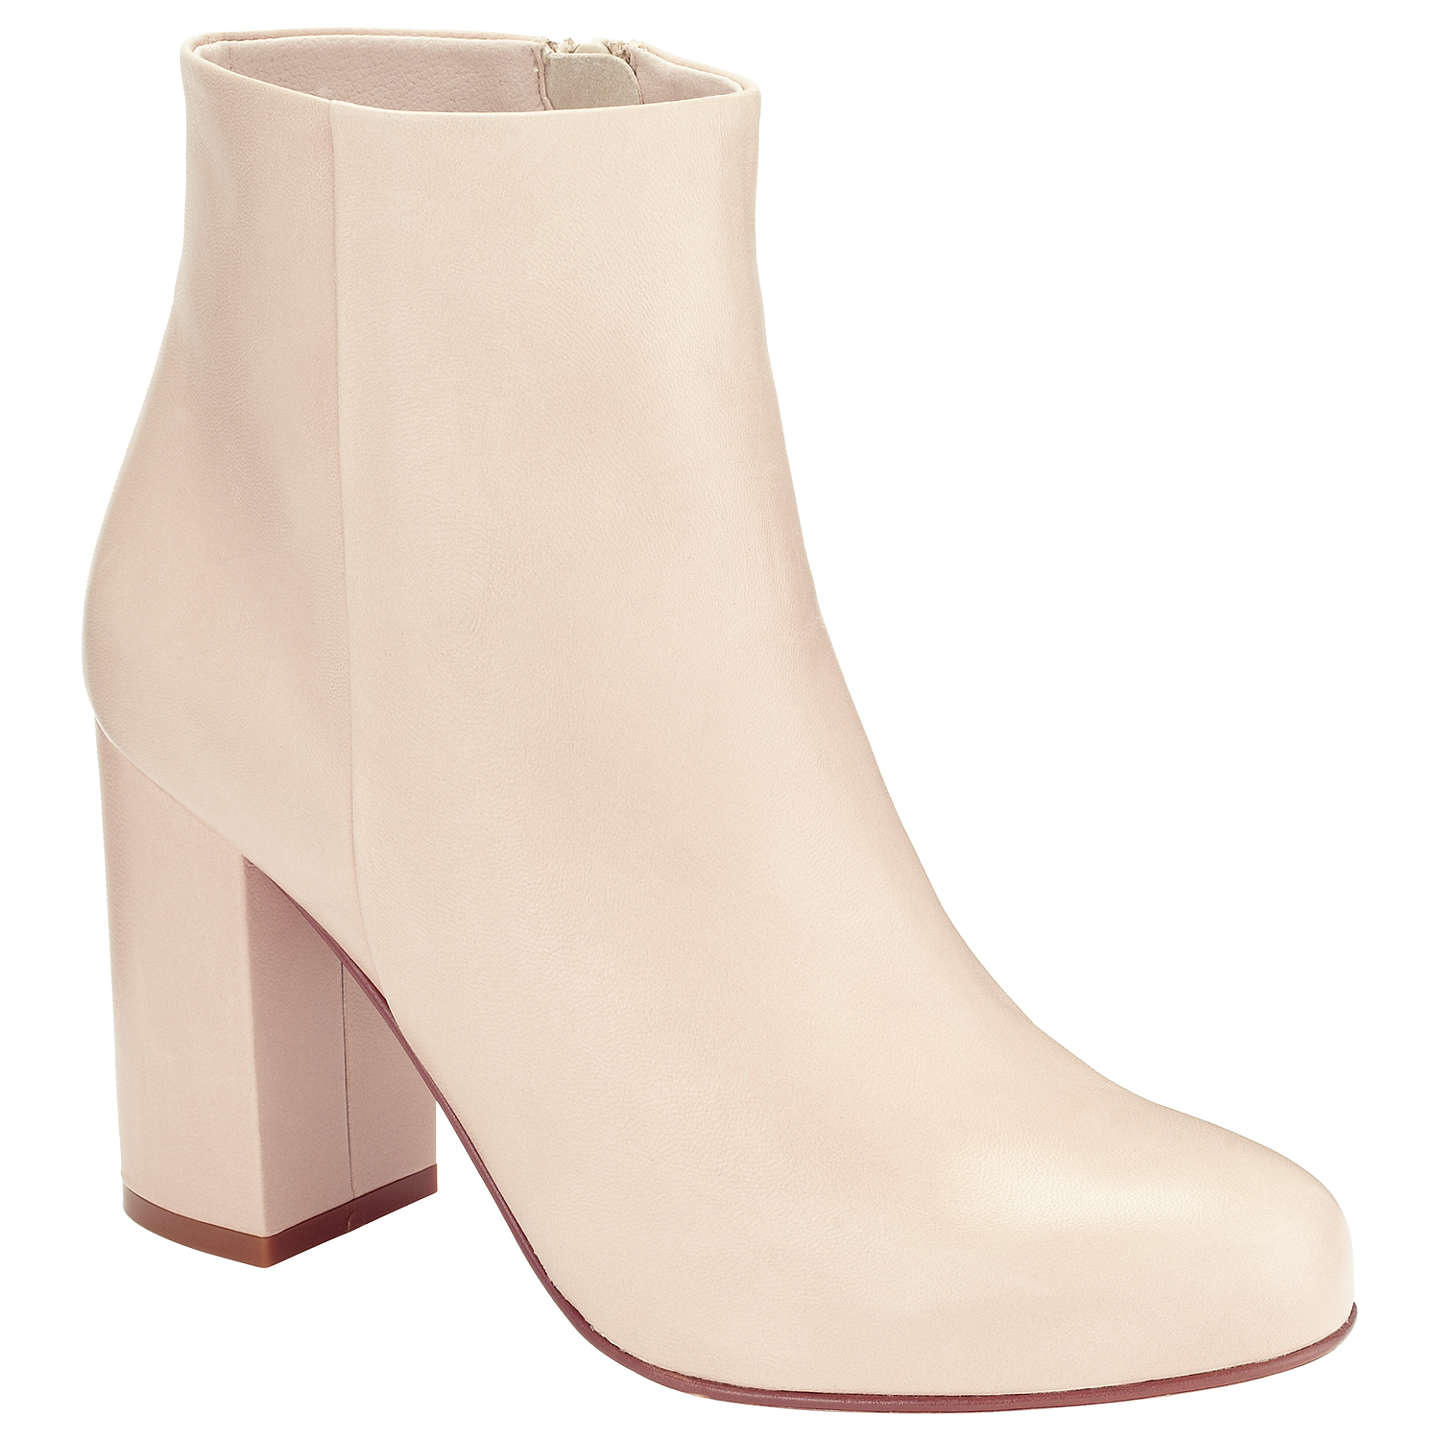 BuyKin by John Lewis Olle Block Heeled Ankle Boots, Blush Leather, 4 Online at johnlewis.com